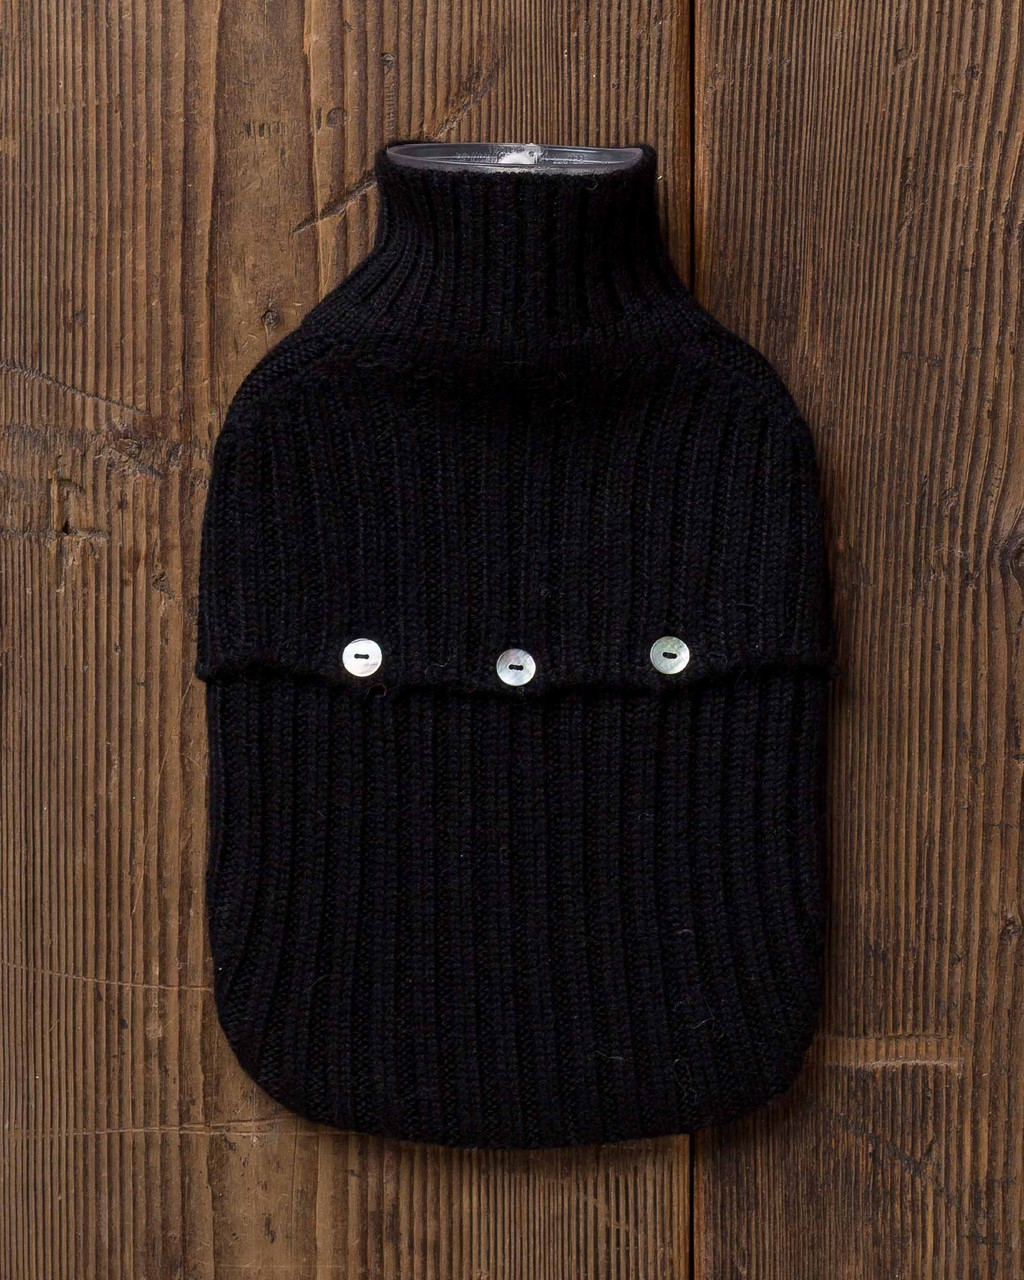 Alicia Adams Alpaca Hot Water Bottle, alpaca gift items, alpaca hot water bottle cover, fair trade made in peru, black alpaca hot water bottle